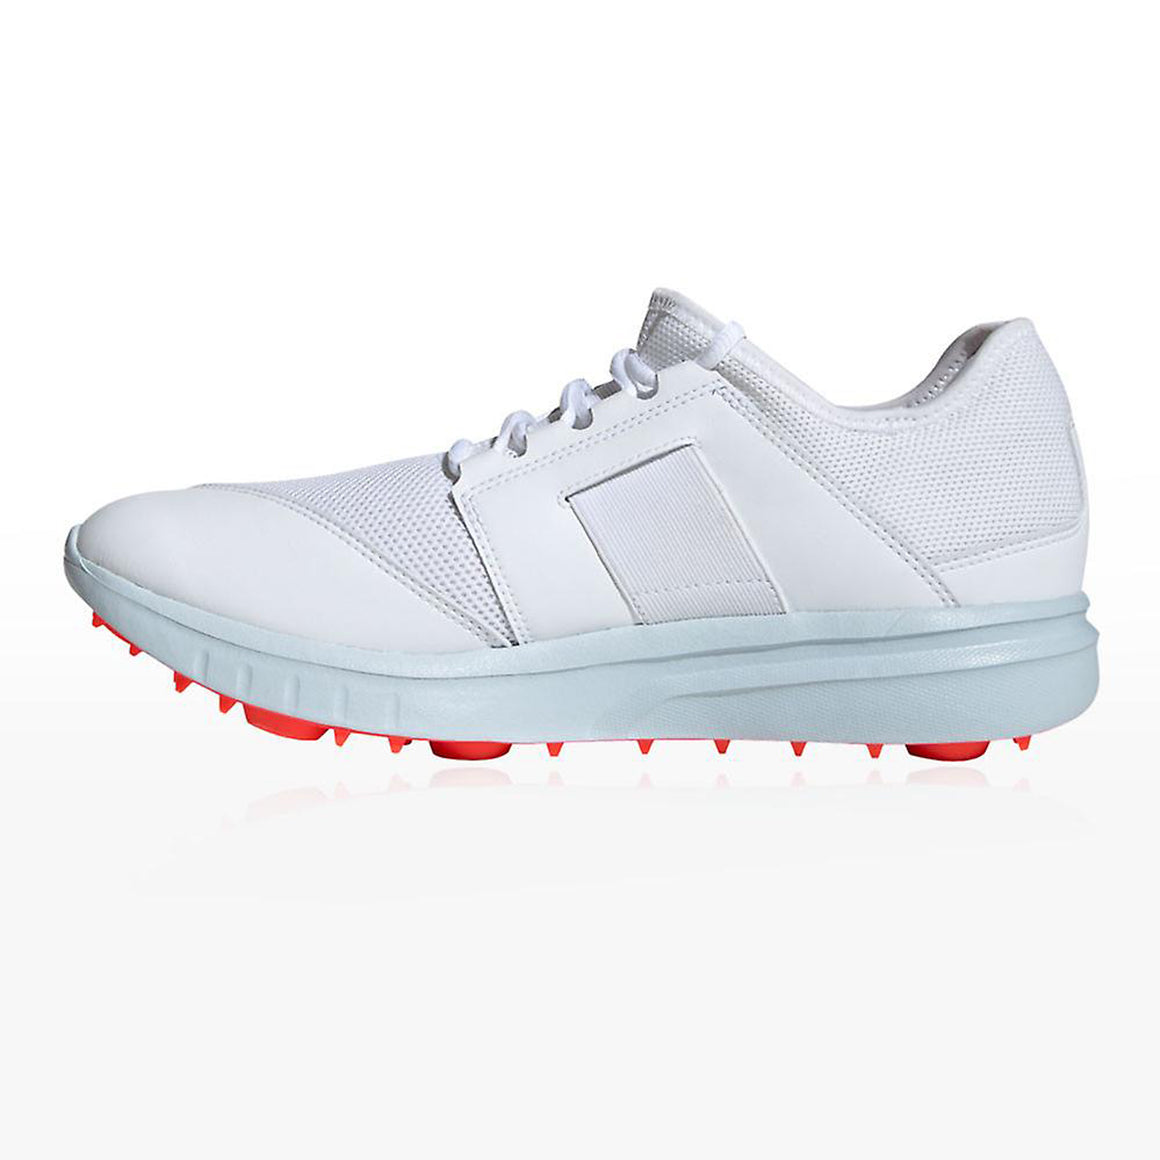 Howzat Spike Cricket Shoes for Men in White